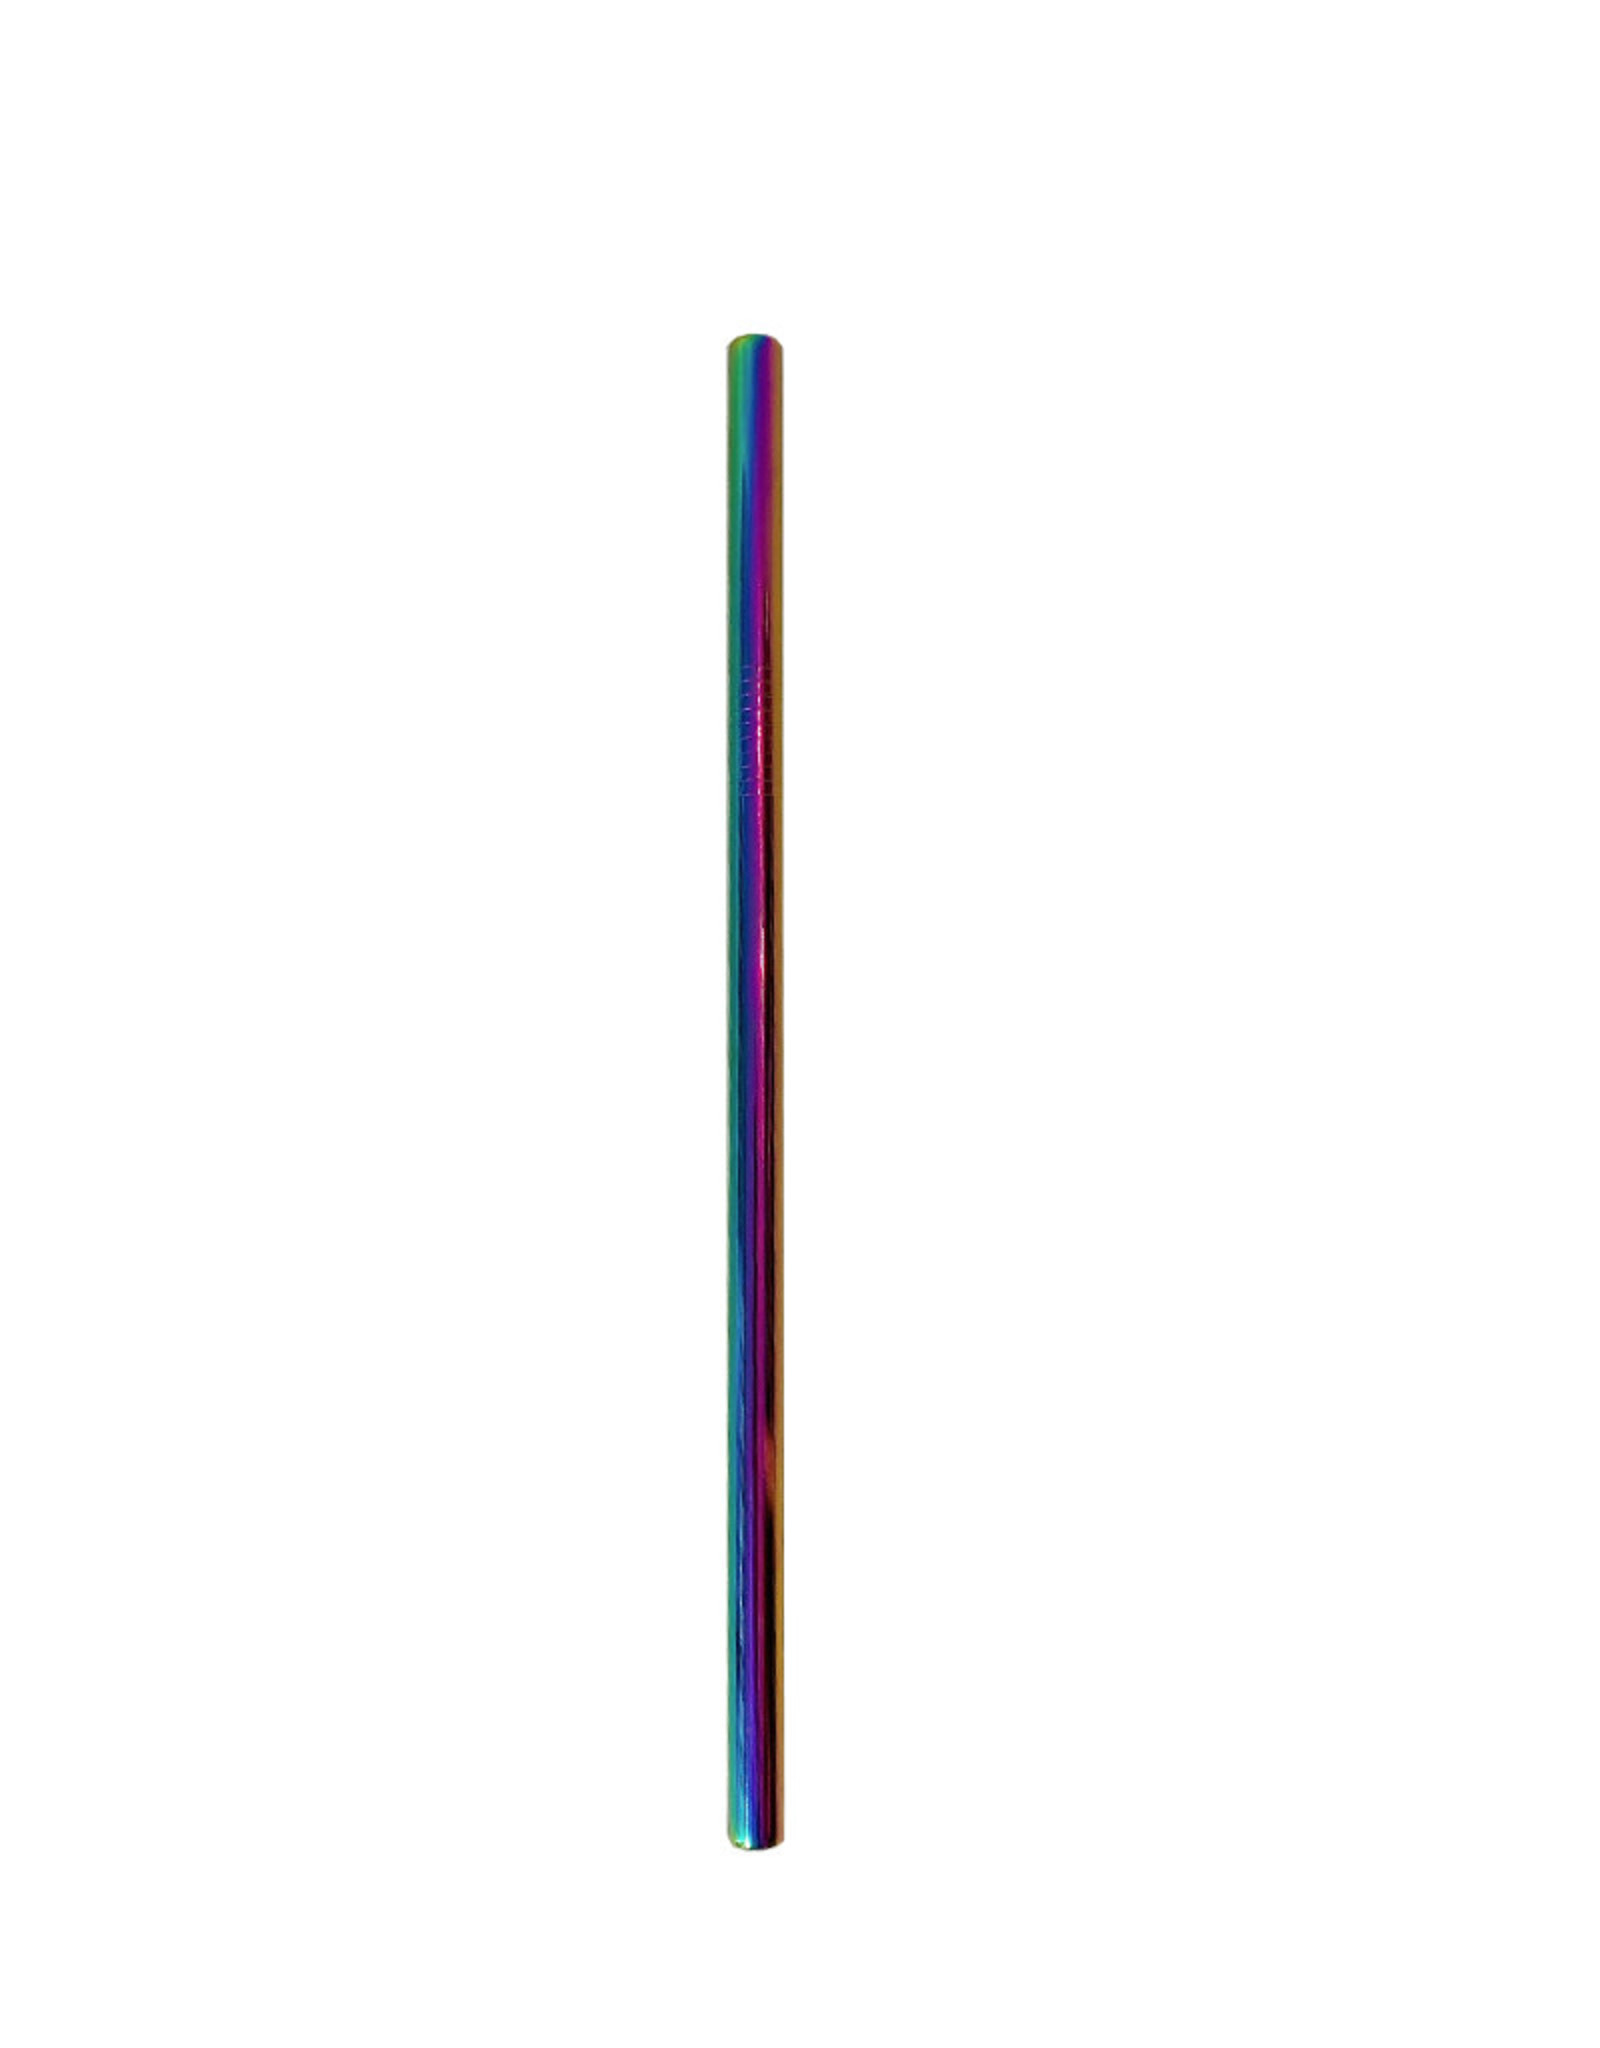 The Last Straw The Last Straw - Stainless Steel Smoothie, Rainbow (Straight)